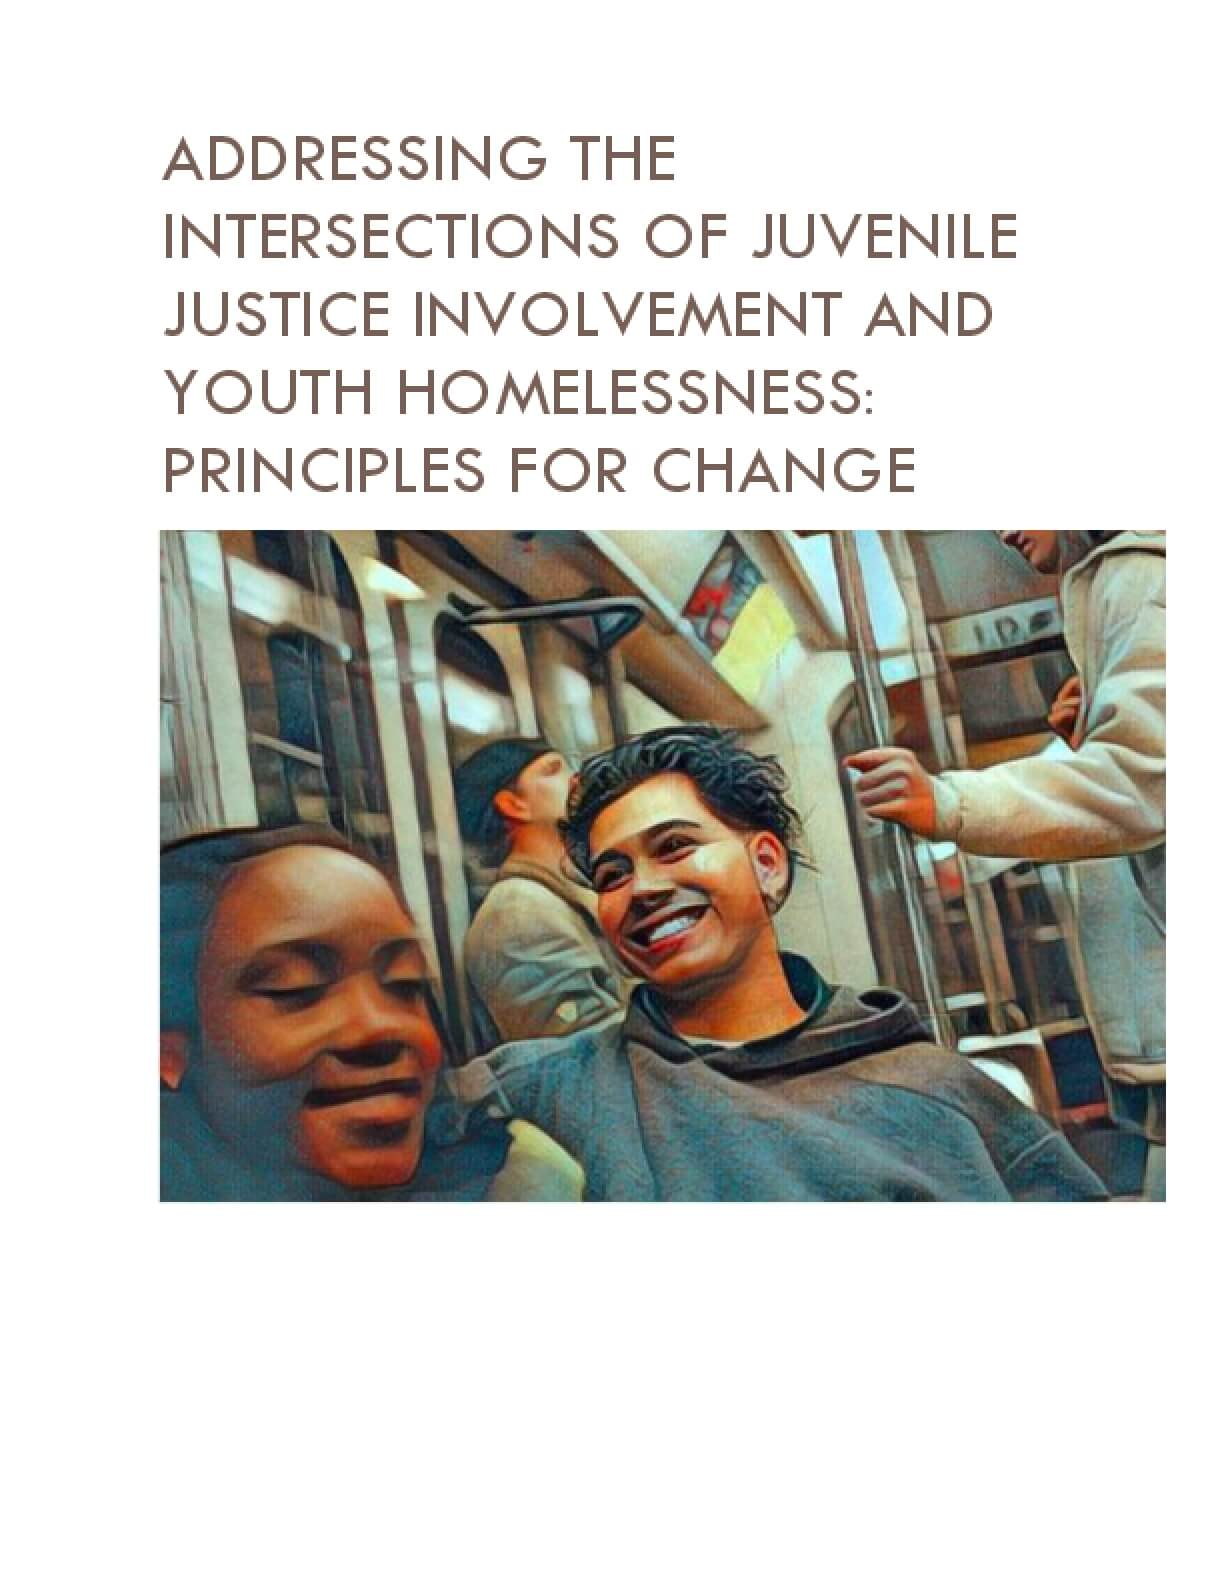 Addressing the Intersections of Juvenile Justice Involvement and Youth Homelessness: Principles for Change